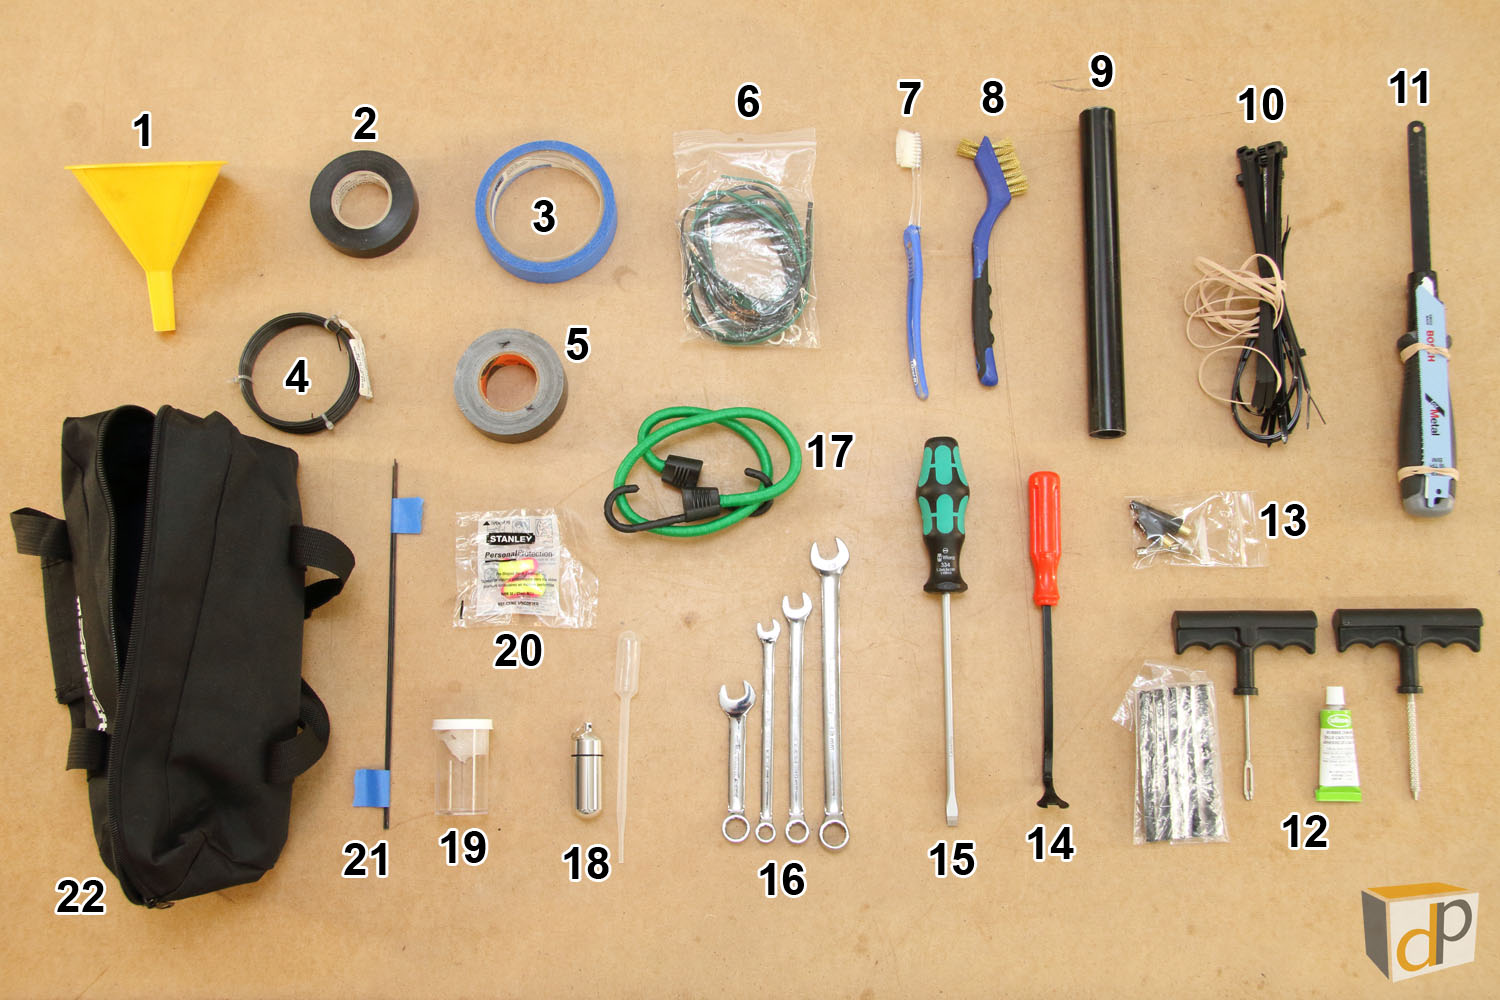 Photo #5 - Contents of Black Mastercraft Case (Item #1 in Photo #4)